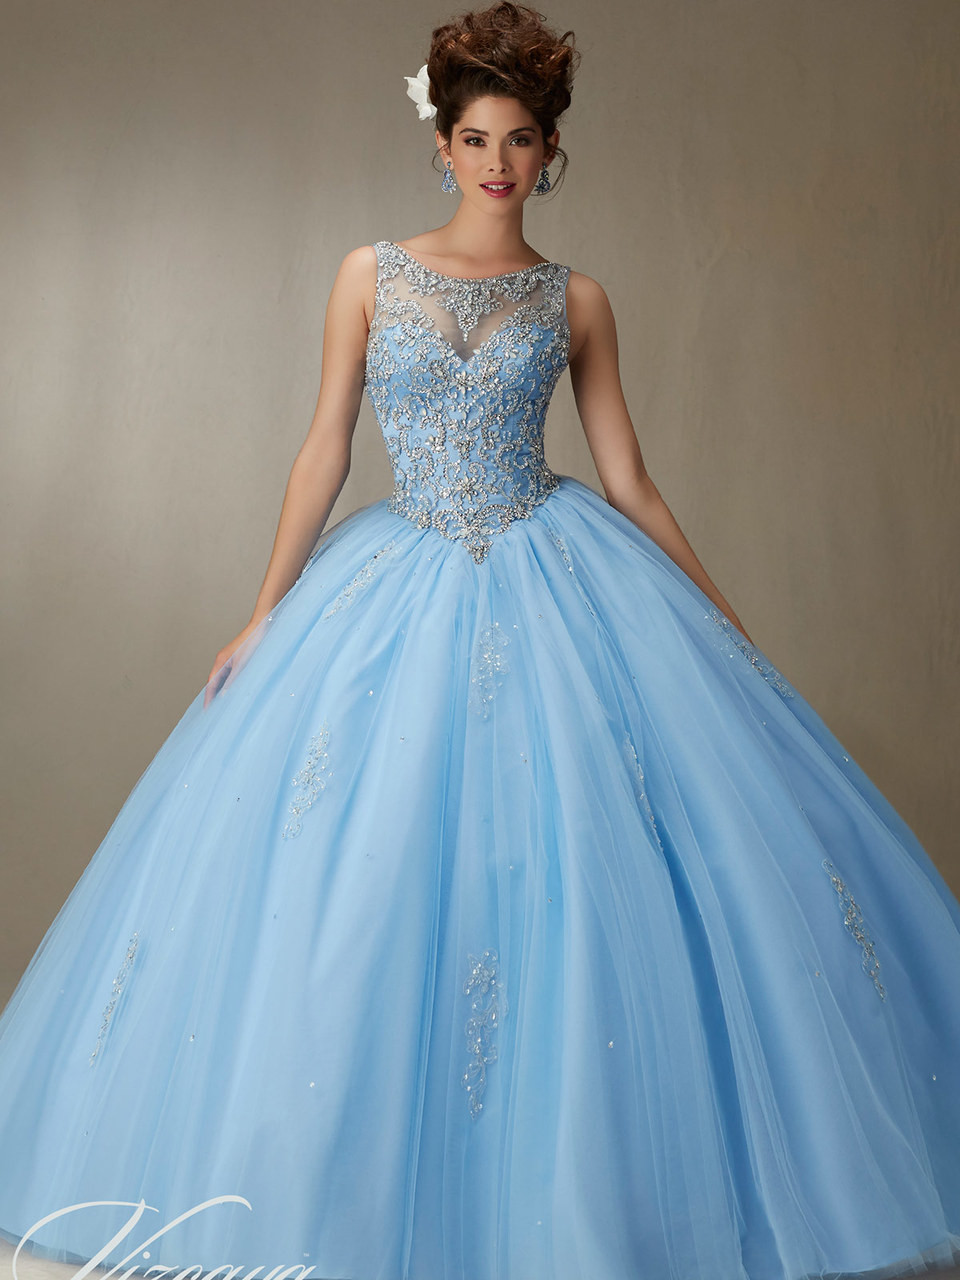 Vizcaya 89067 High Neck Ball Gown Dress | PromHeadquarters.com